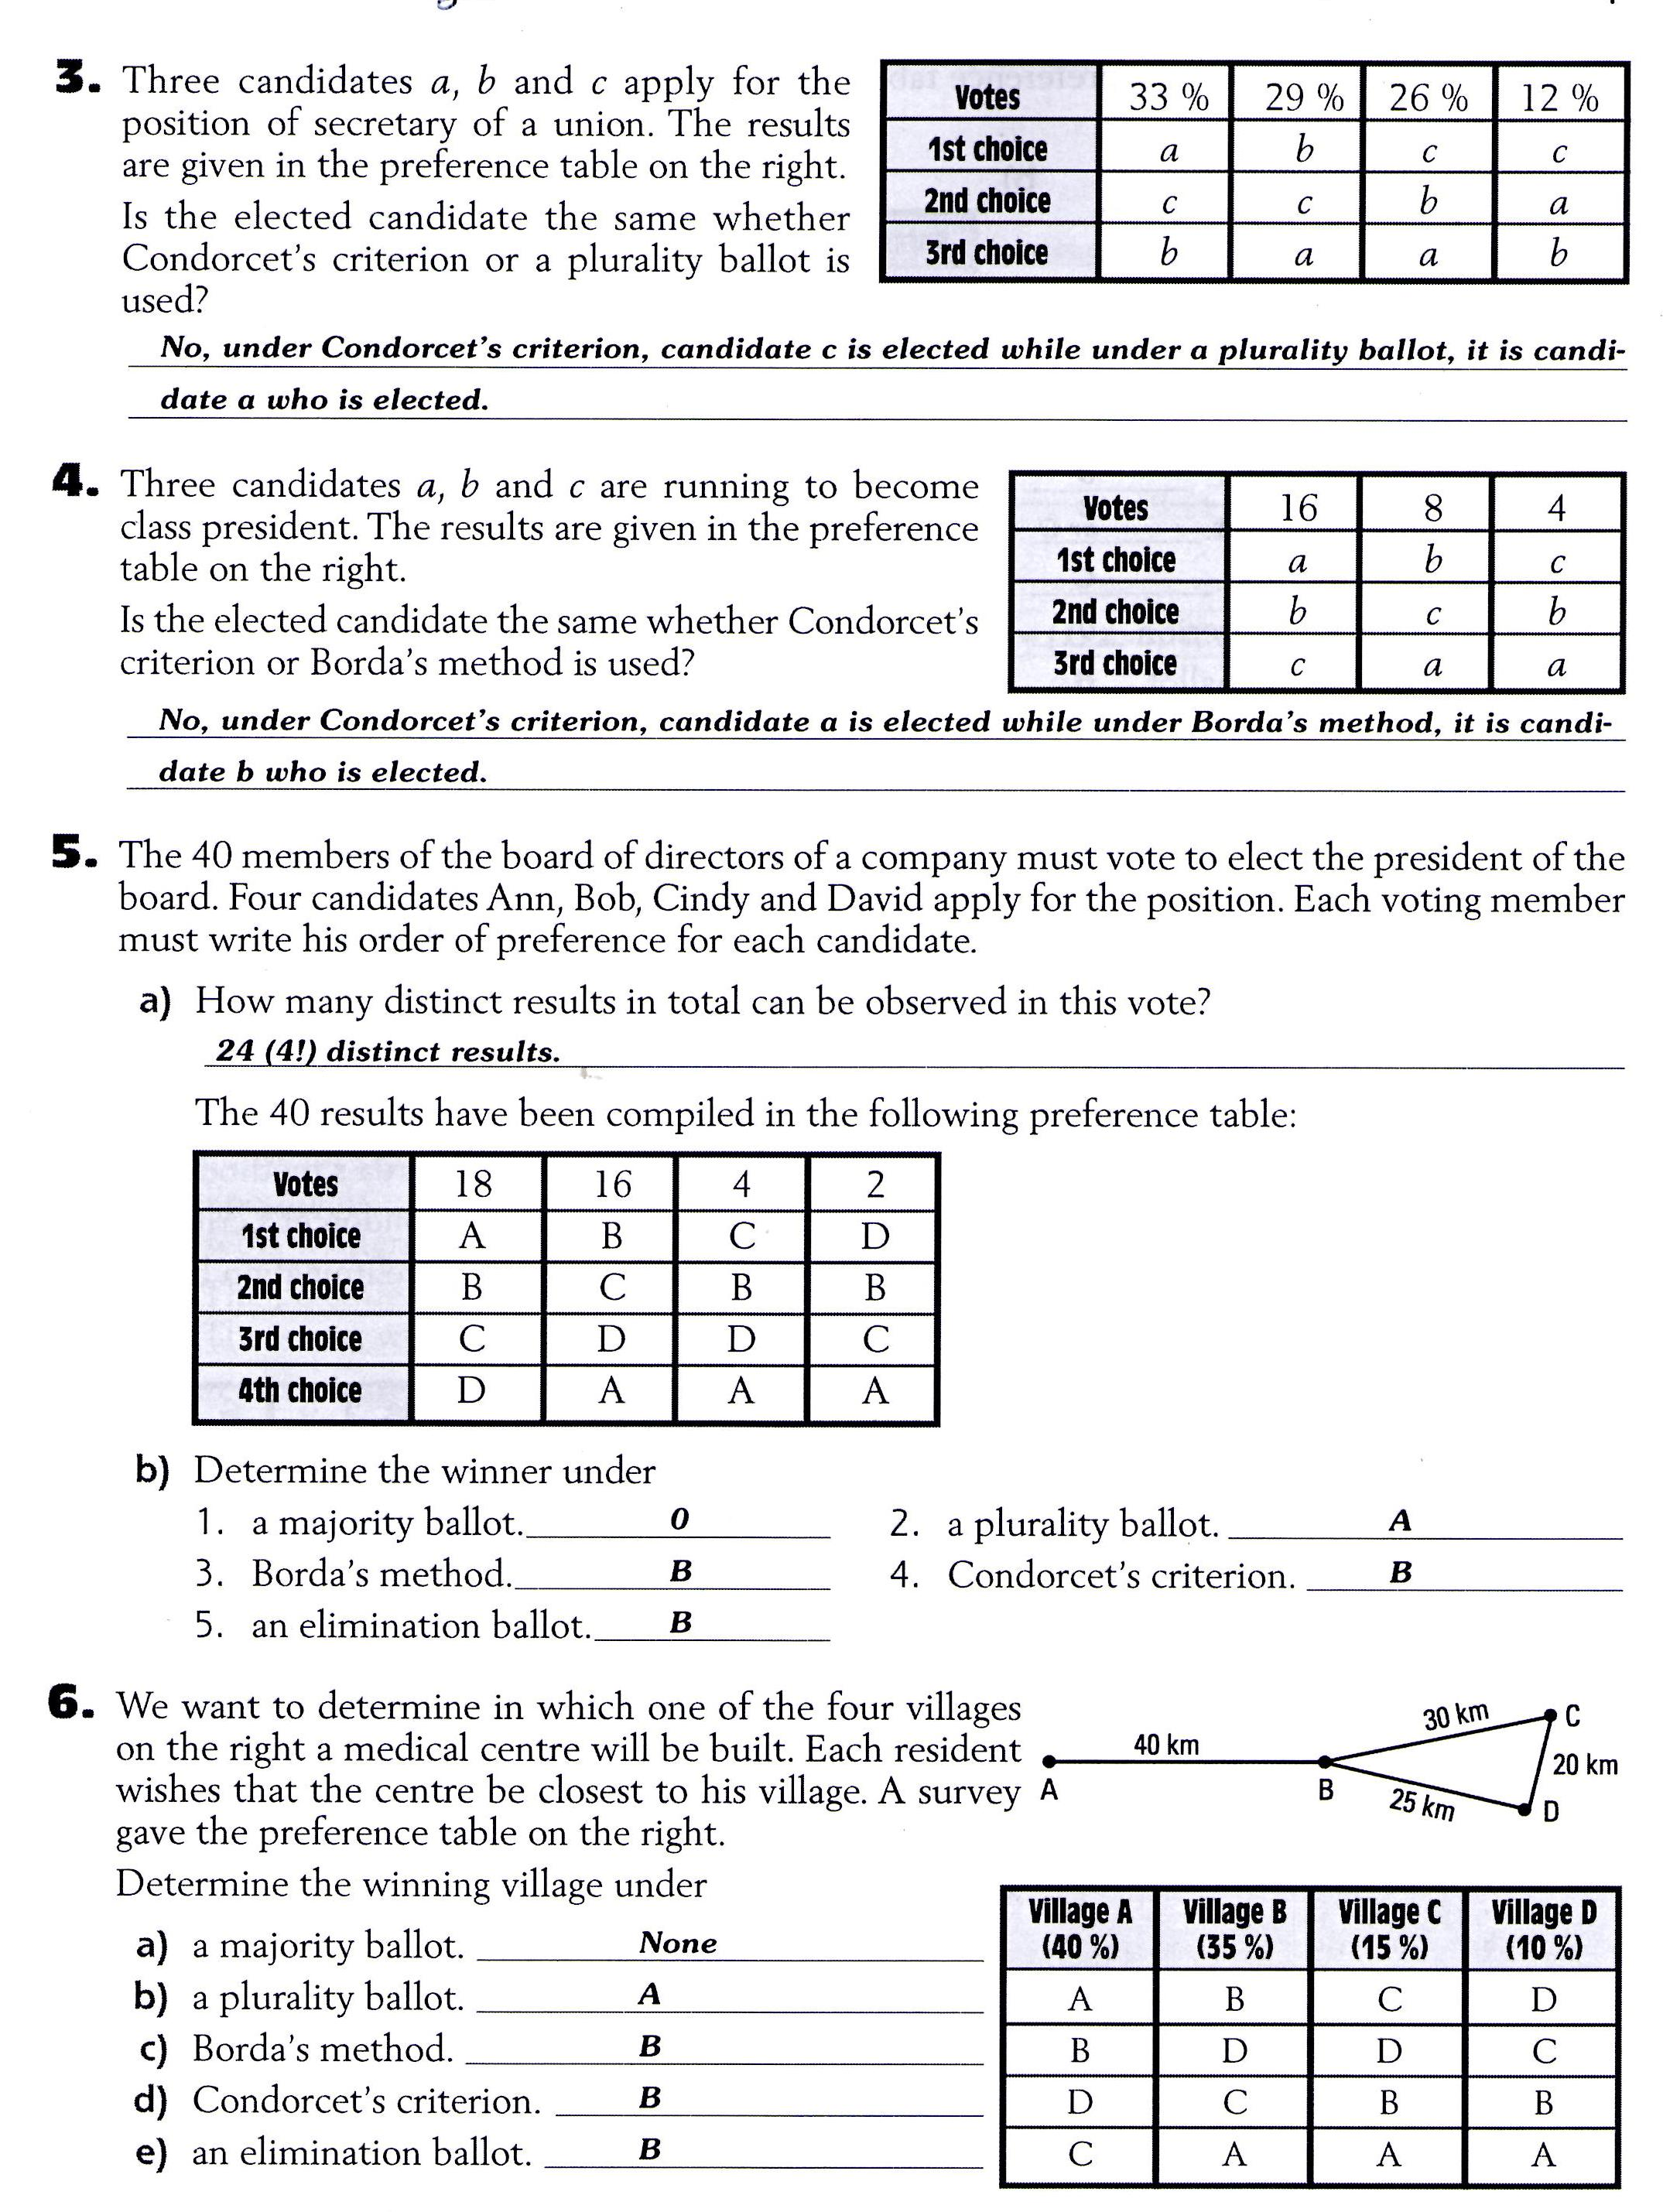 Fun Math Worksheet For 8th Graders